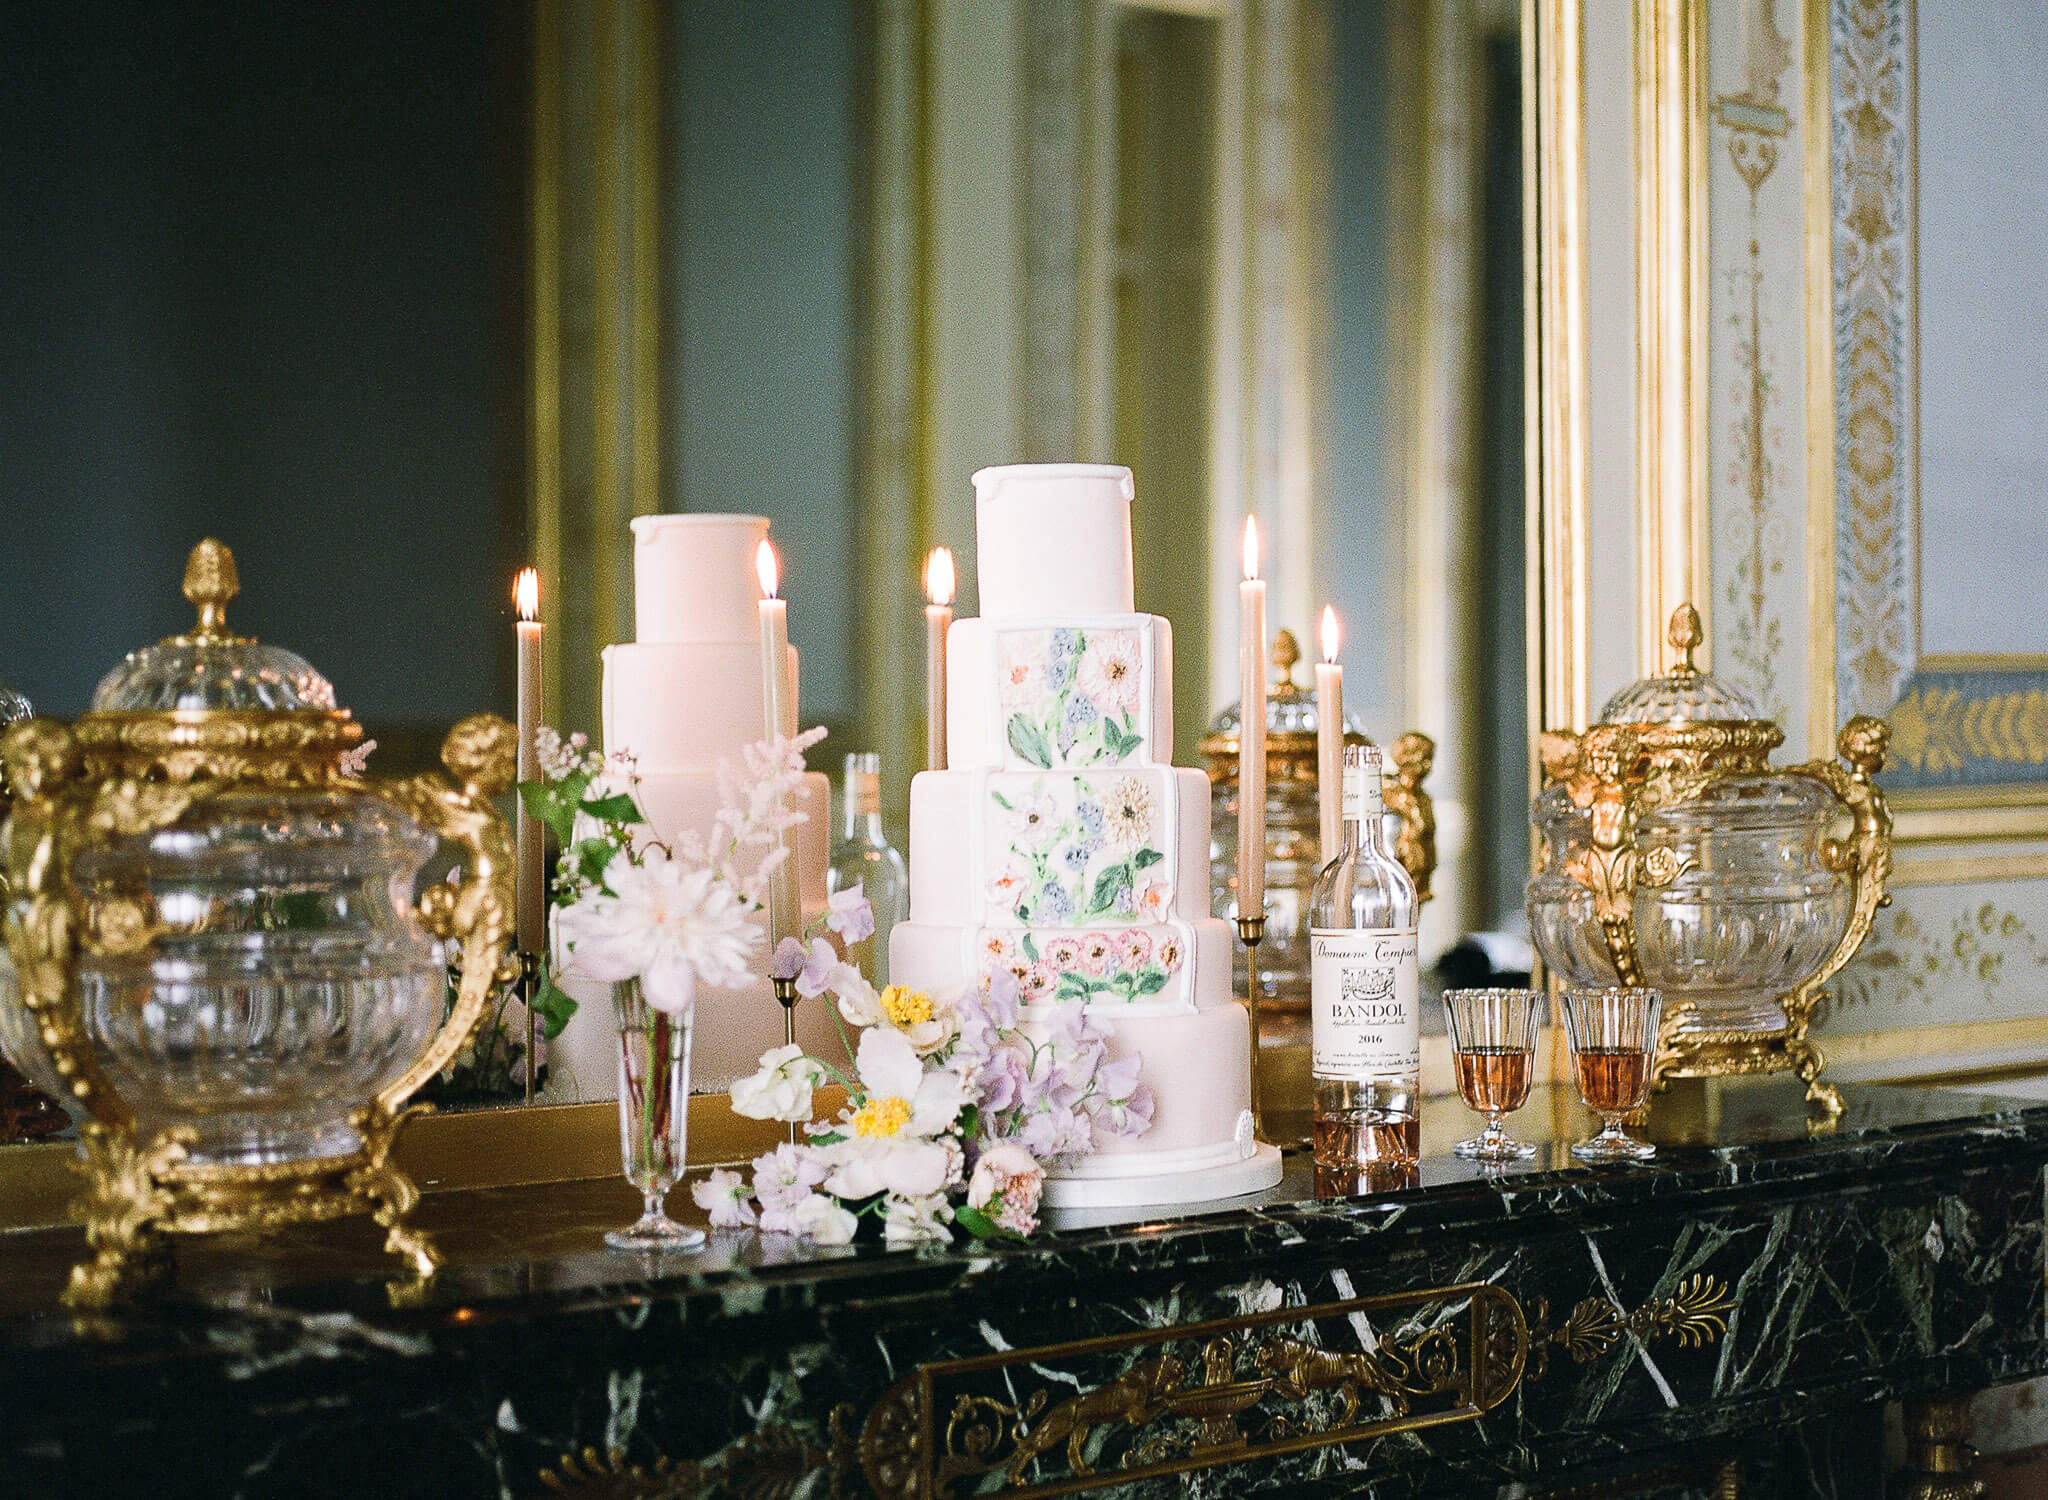 five-tiered wedding cake with pastel florals on mantlepiece by Portugal Wedding Photographer